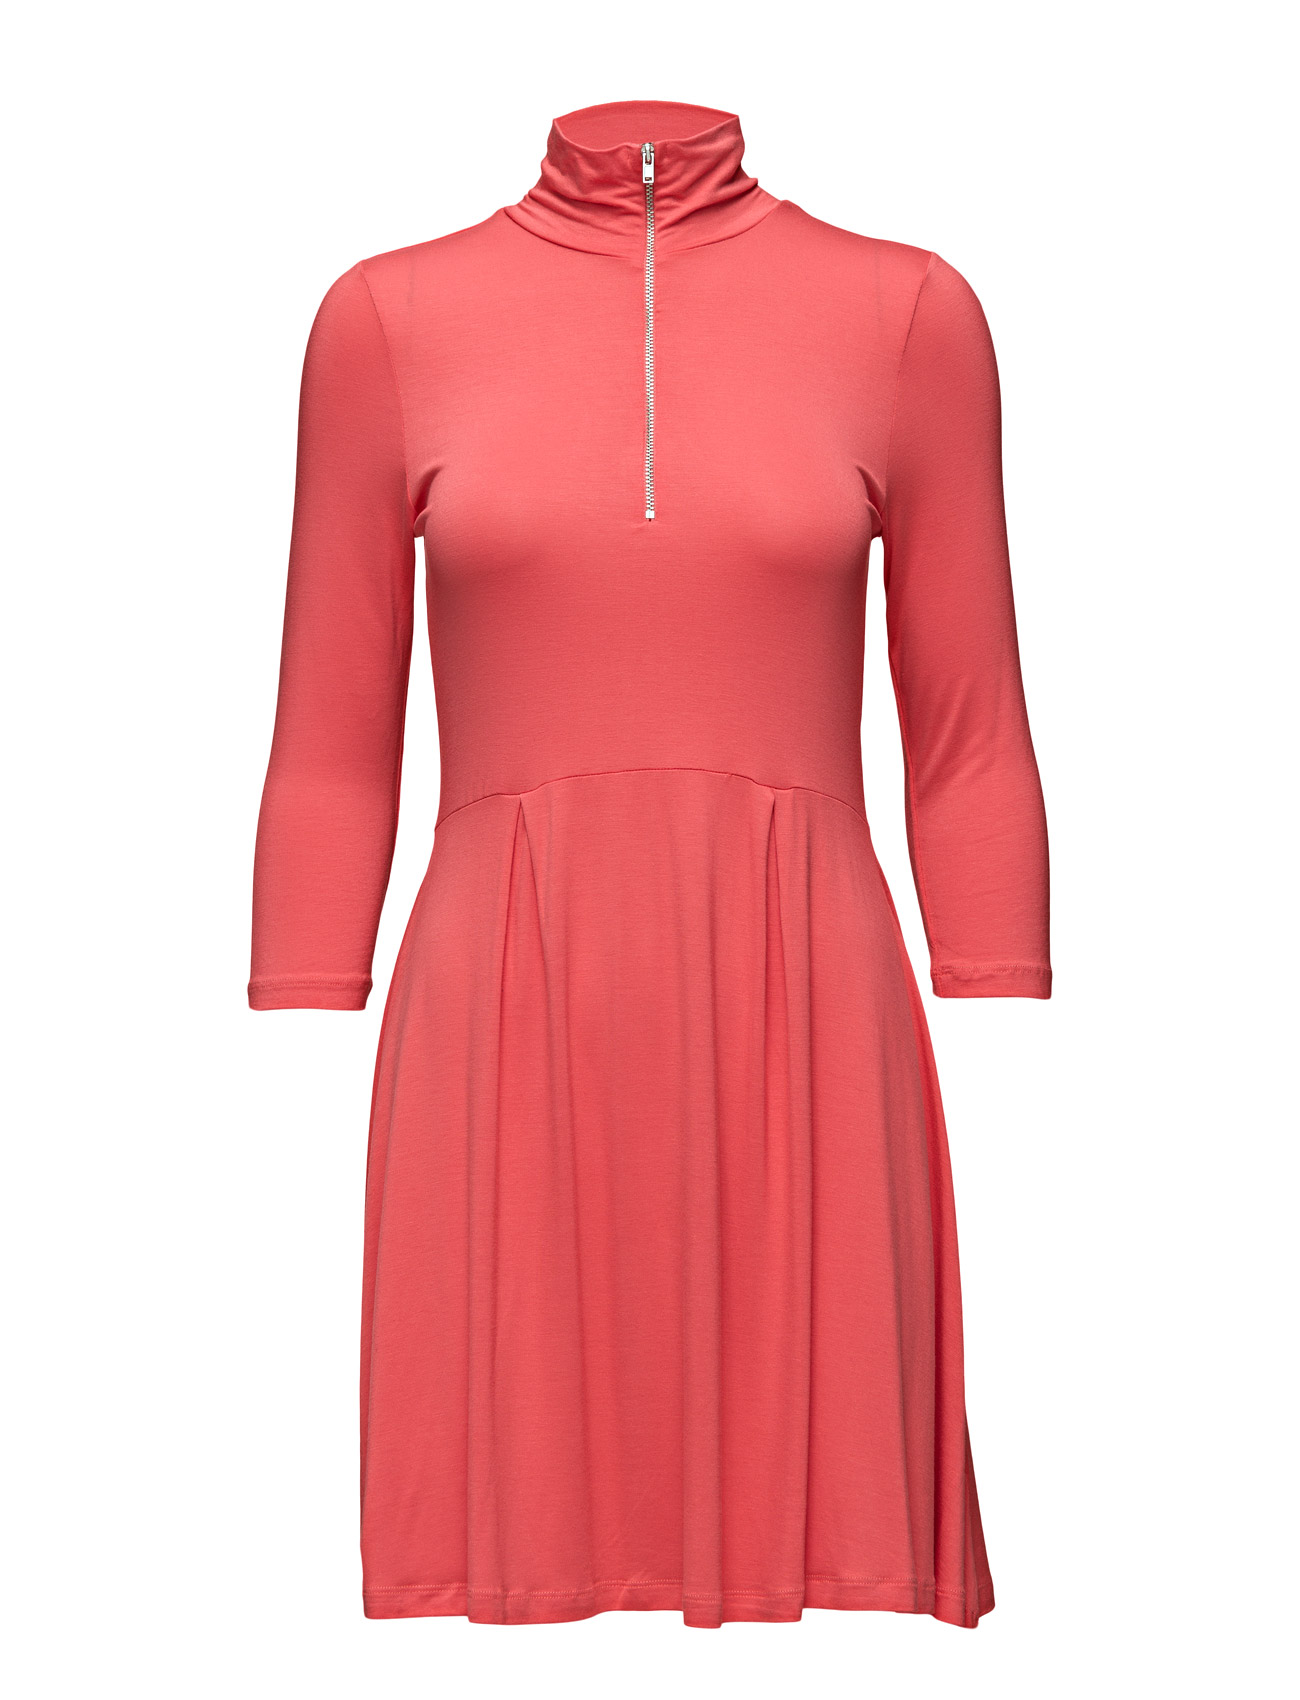 Vmniho 3/4 Rollneck Zip Dress Nfs Vero Moda Korte kjoler til Damer i Rose Of Sharon